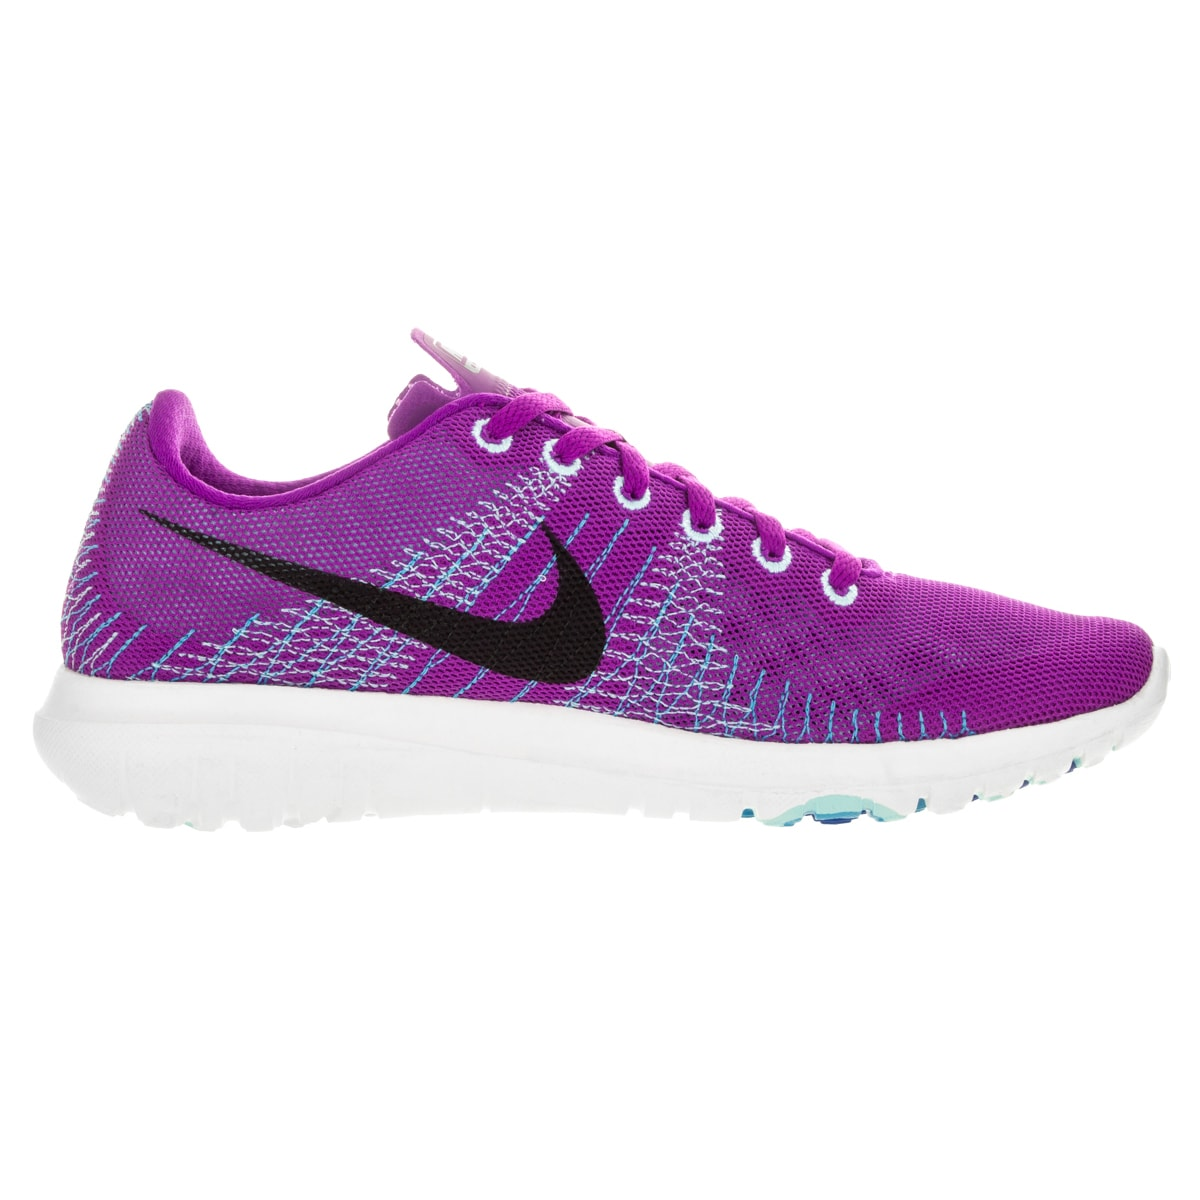 124046f222cf Shop Nike Women s Flex Fury Vivid Purple Black Copa  Running Shoe - Free  Shipping Today - Overstock - 12321760